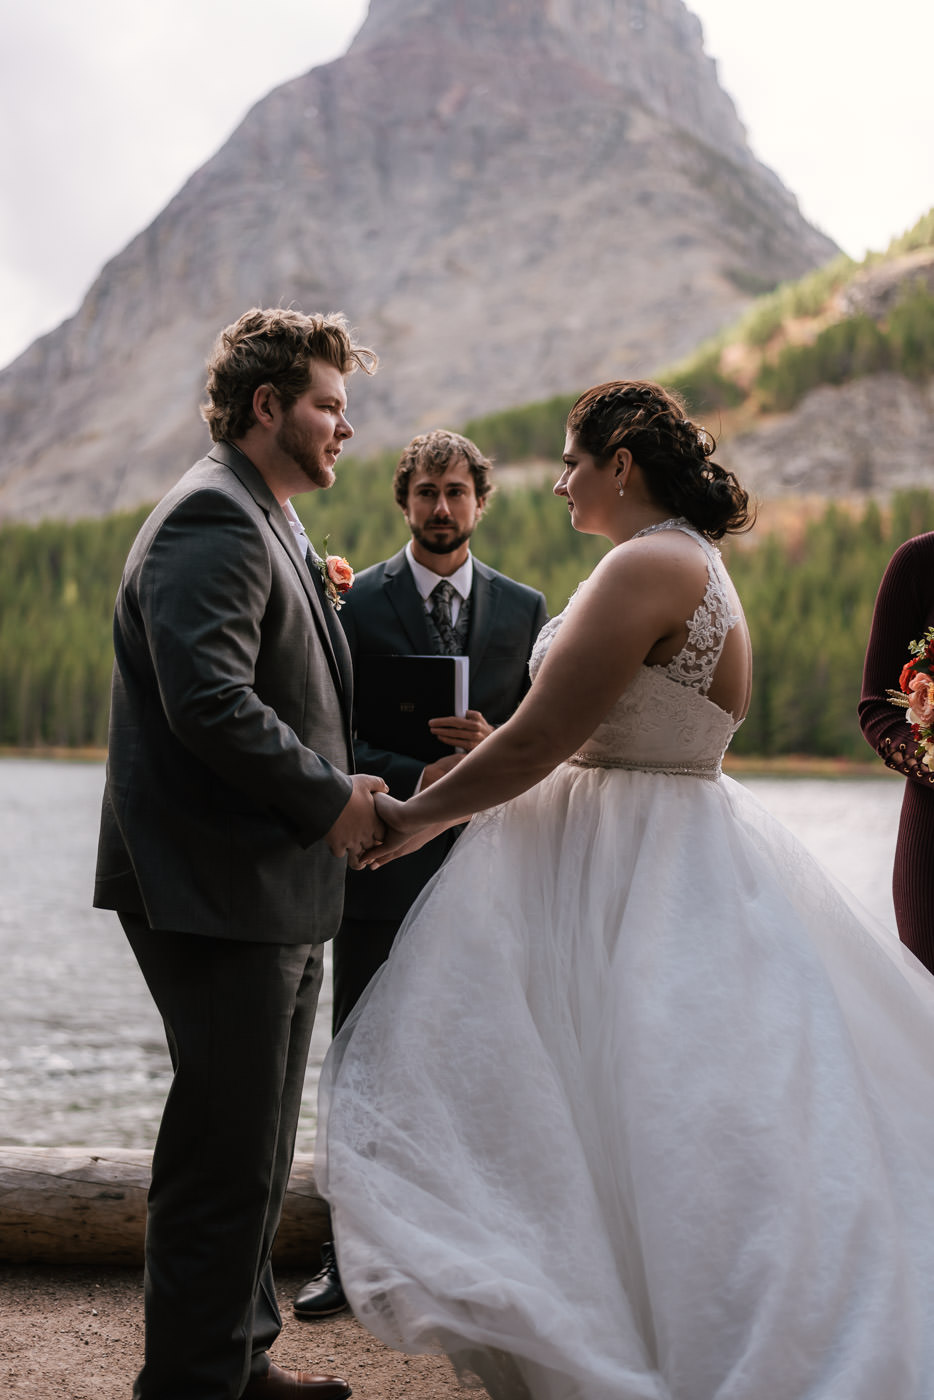 Couple exchanges their vows and pledges their lives to one another in Montana.